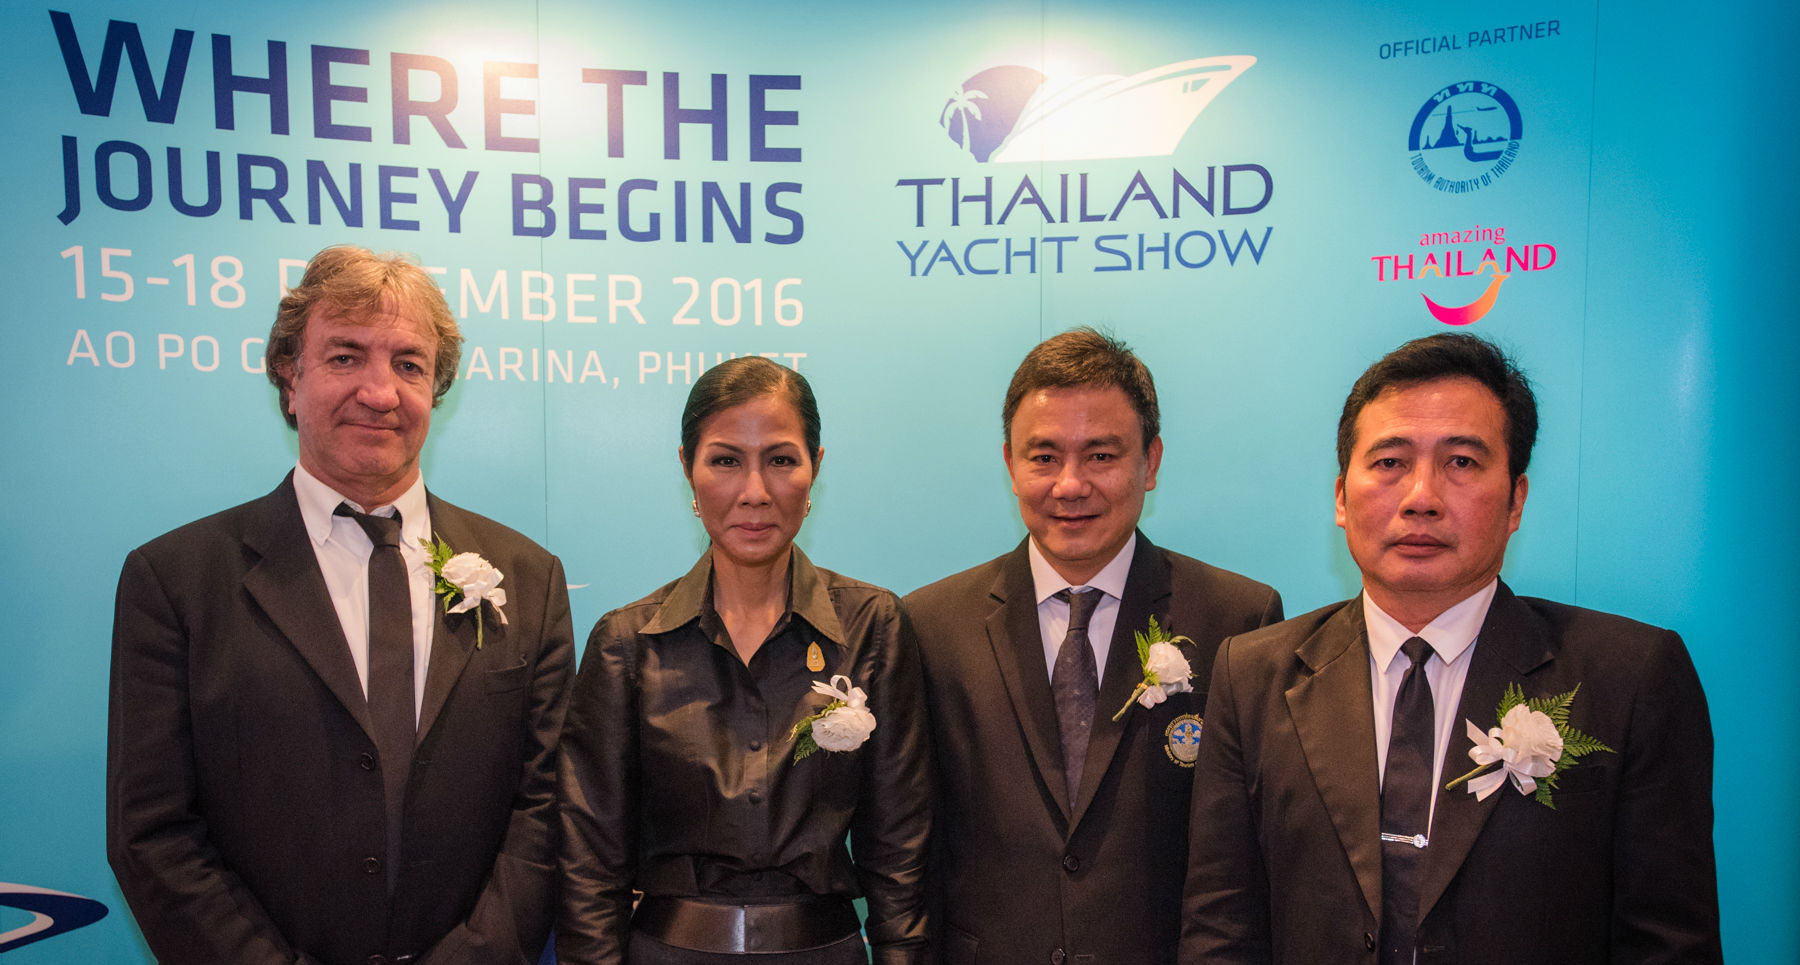 thailand-yacht-show-press